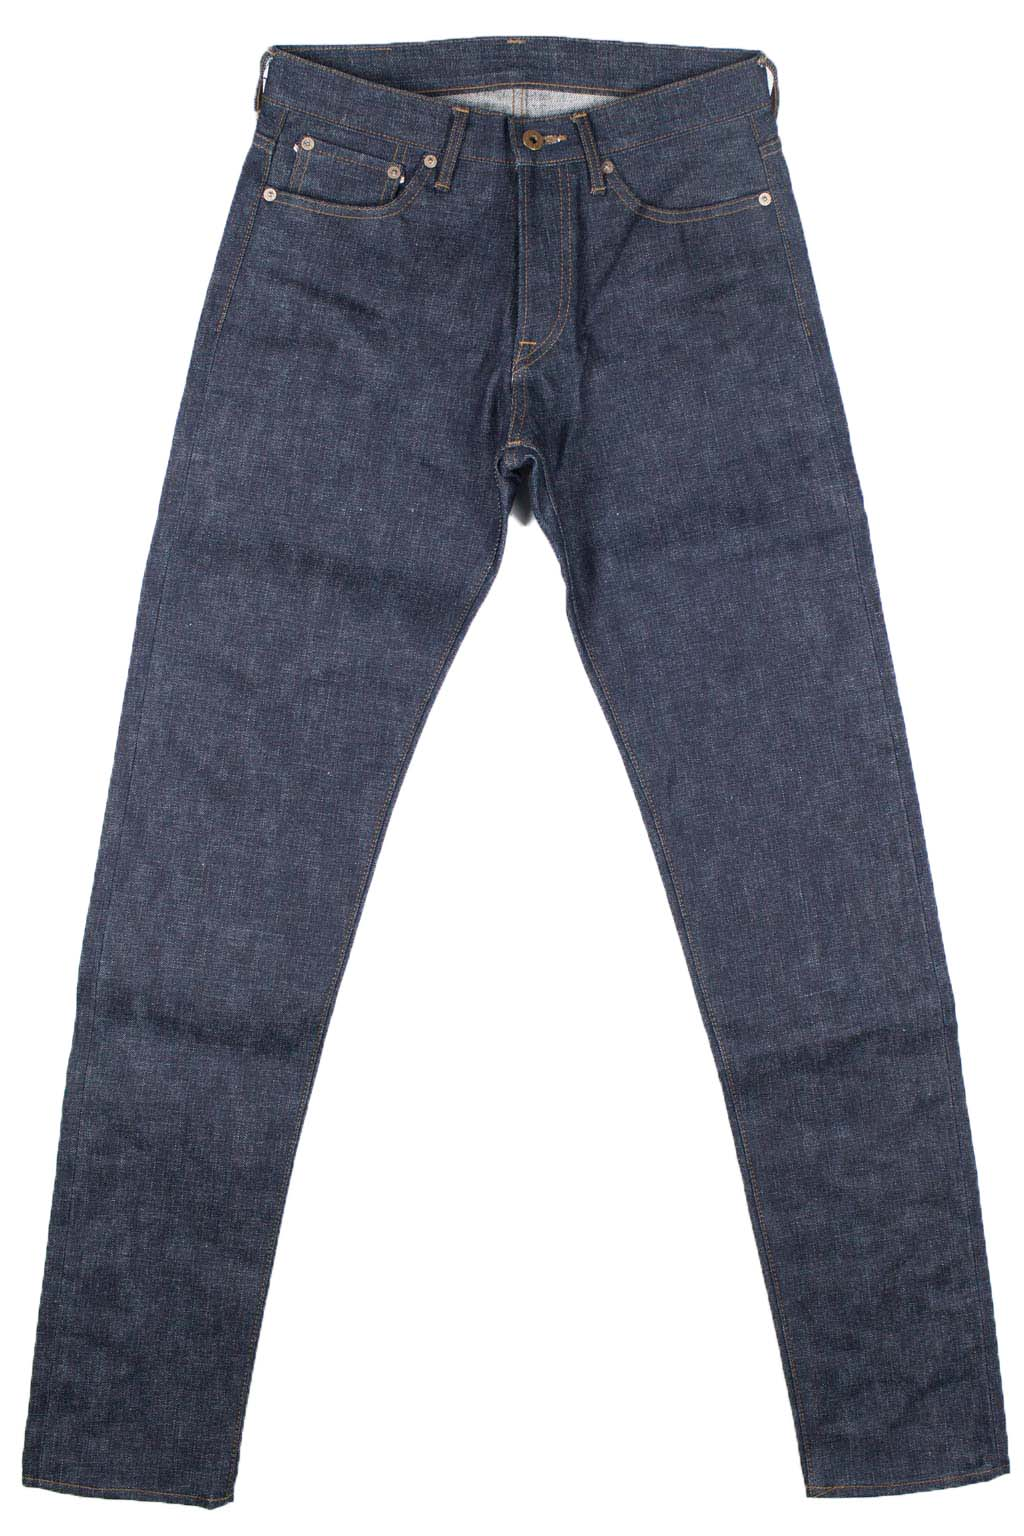 JB0601 14.8oz Vintage Selvage Hi-Tapered